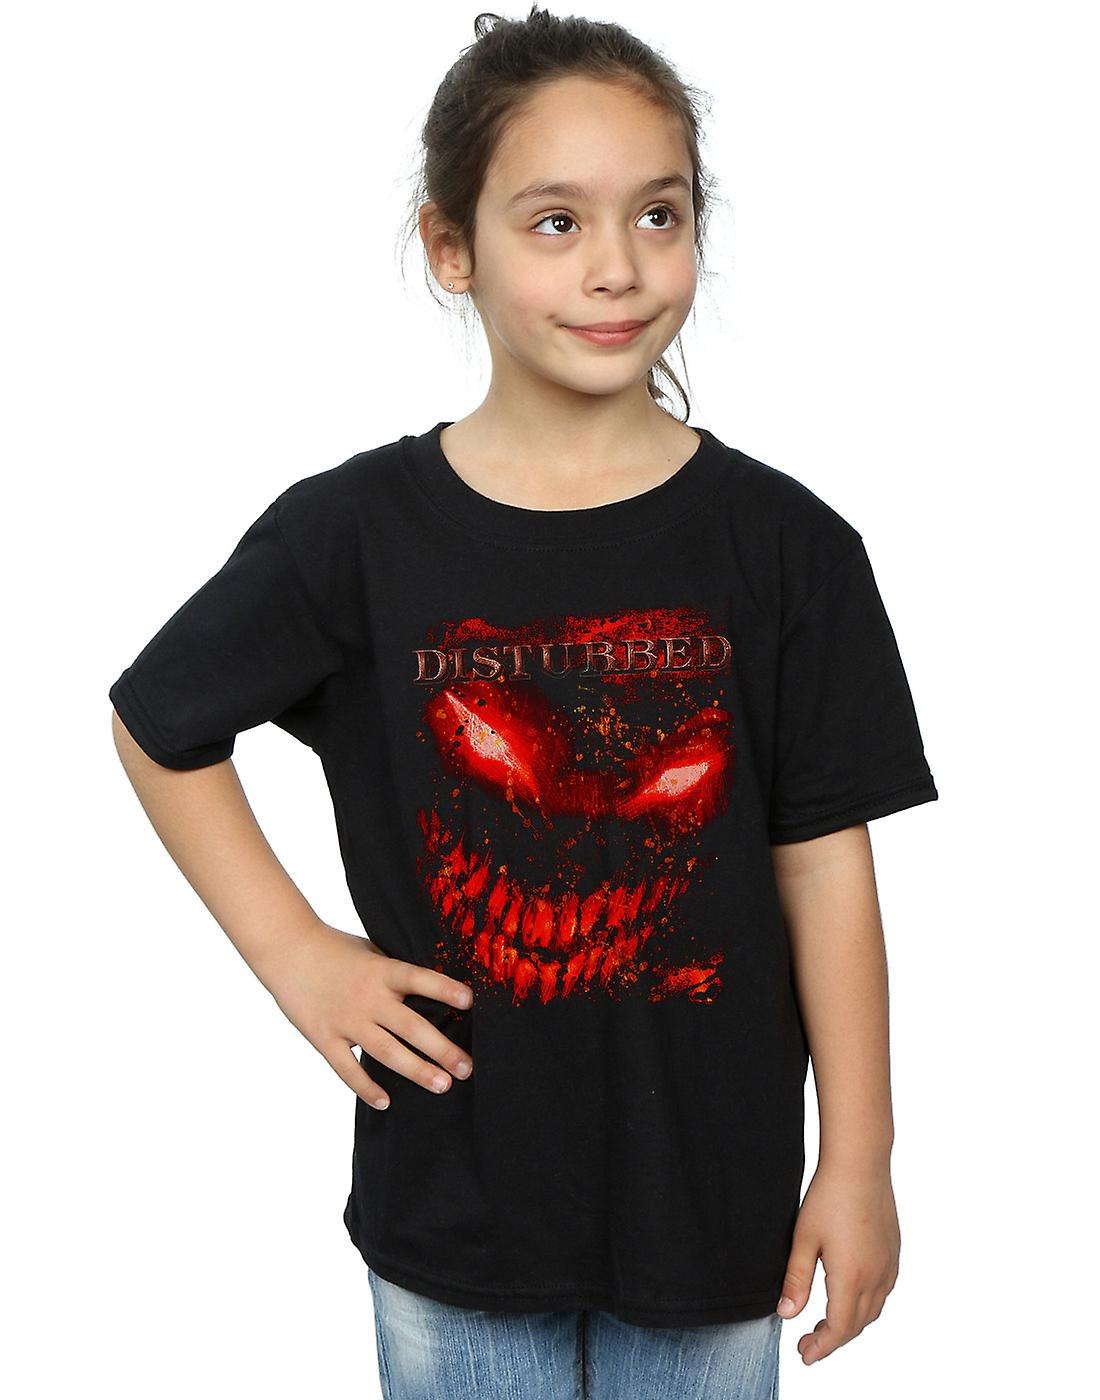 Disturbed Girls Splat Face T-Shirt